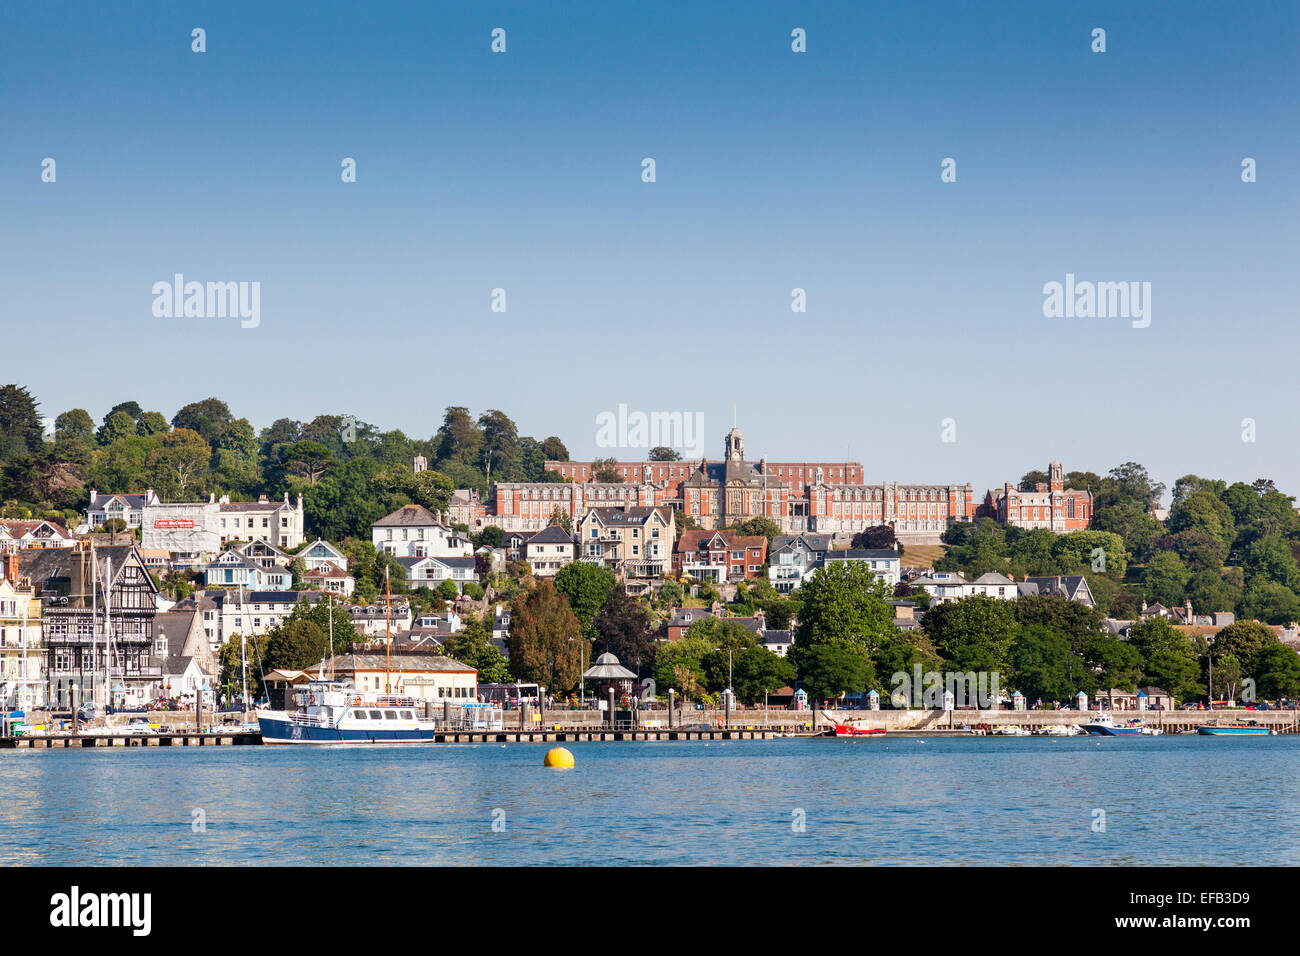 Dartmouth Naval  College Collage from the River Dart Stock Photo